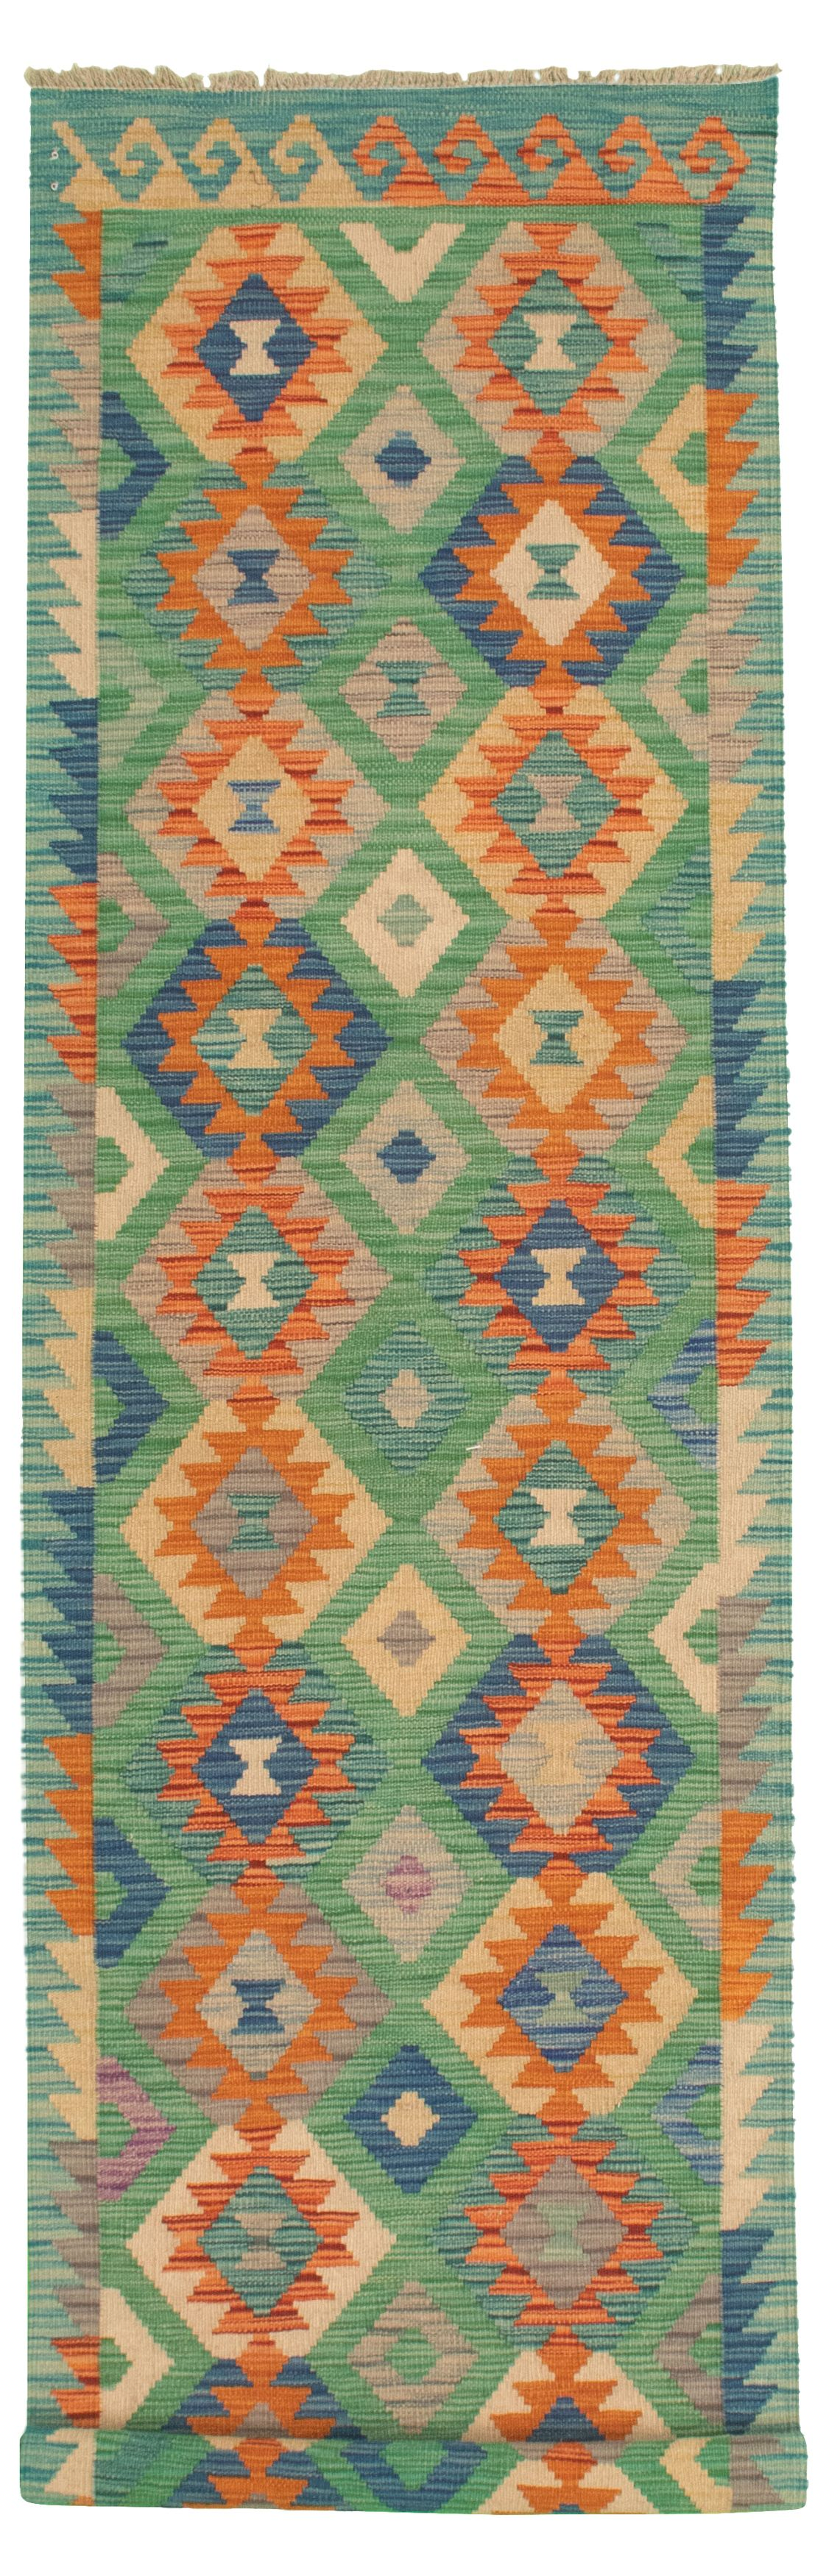 """Hand woven Bold and Colorful  Light Orange, Turquoise Wool Kilim 2'7"""" x 9'10"""" Size: 2'7"""" x 9'10"""""""